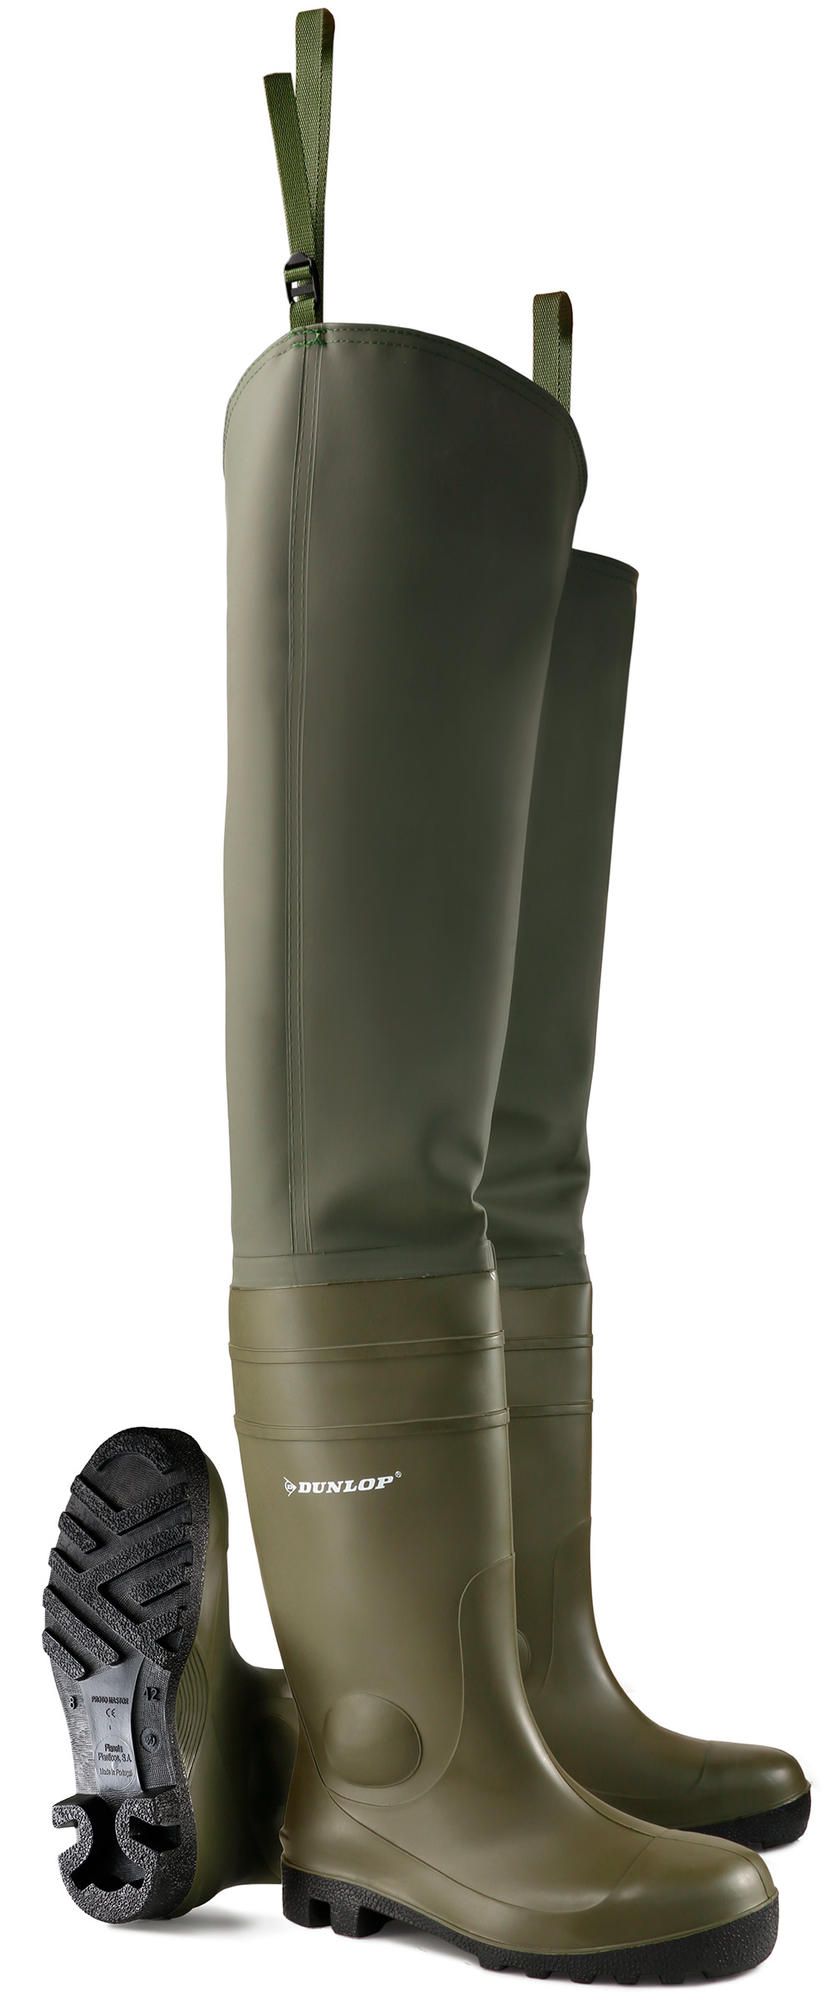 THIGH WADER FULL SAFETY - PTWFS